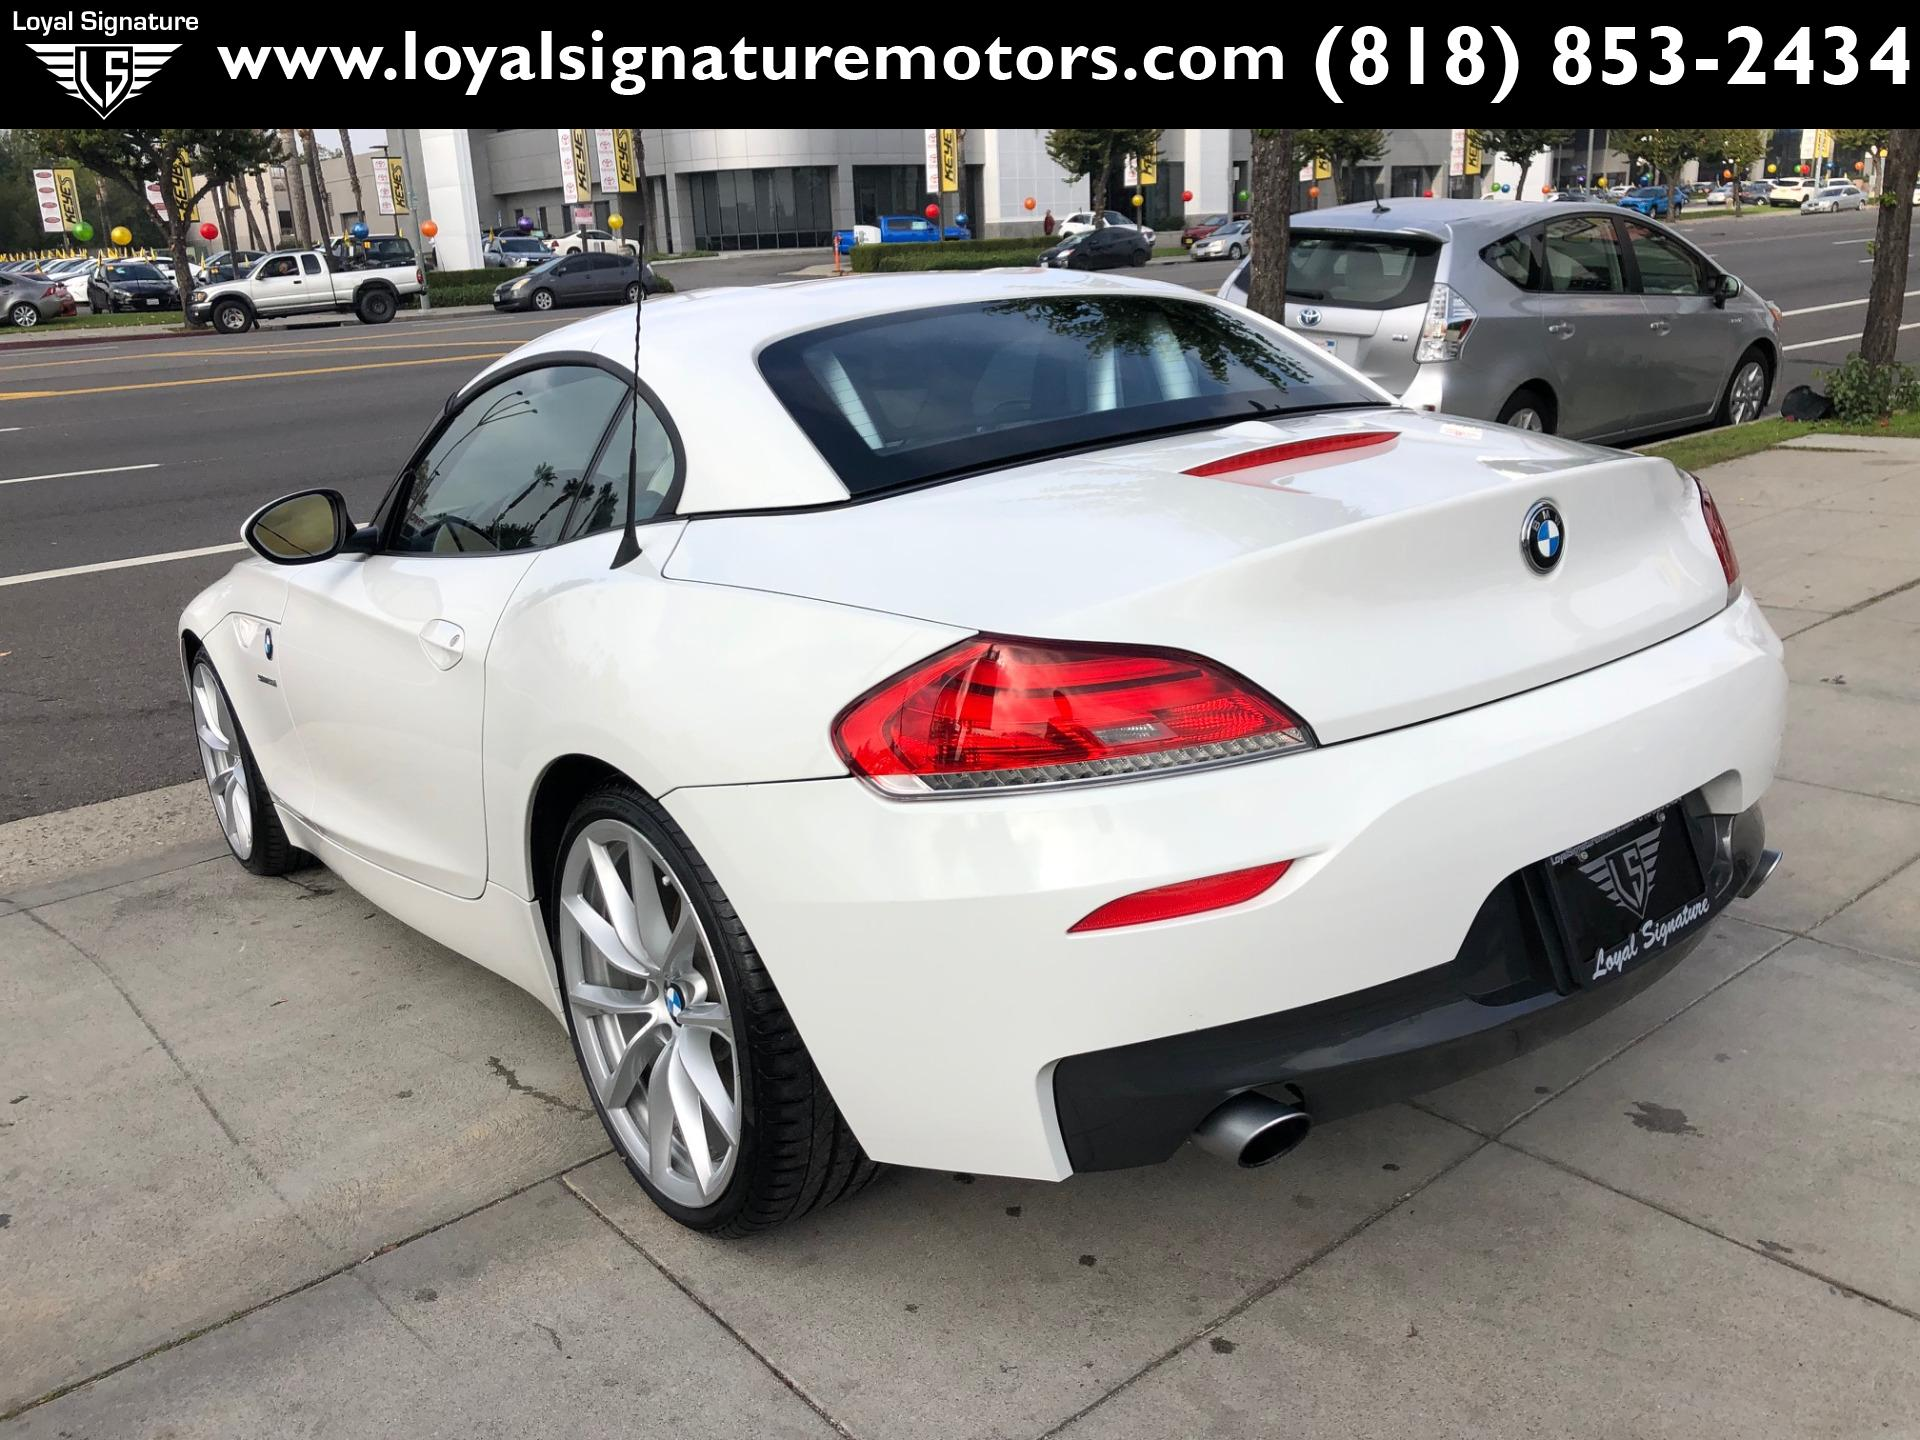 Used-2013-BMW-Z4-sDrive35i